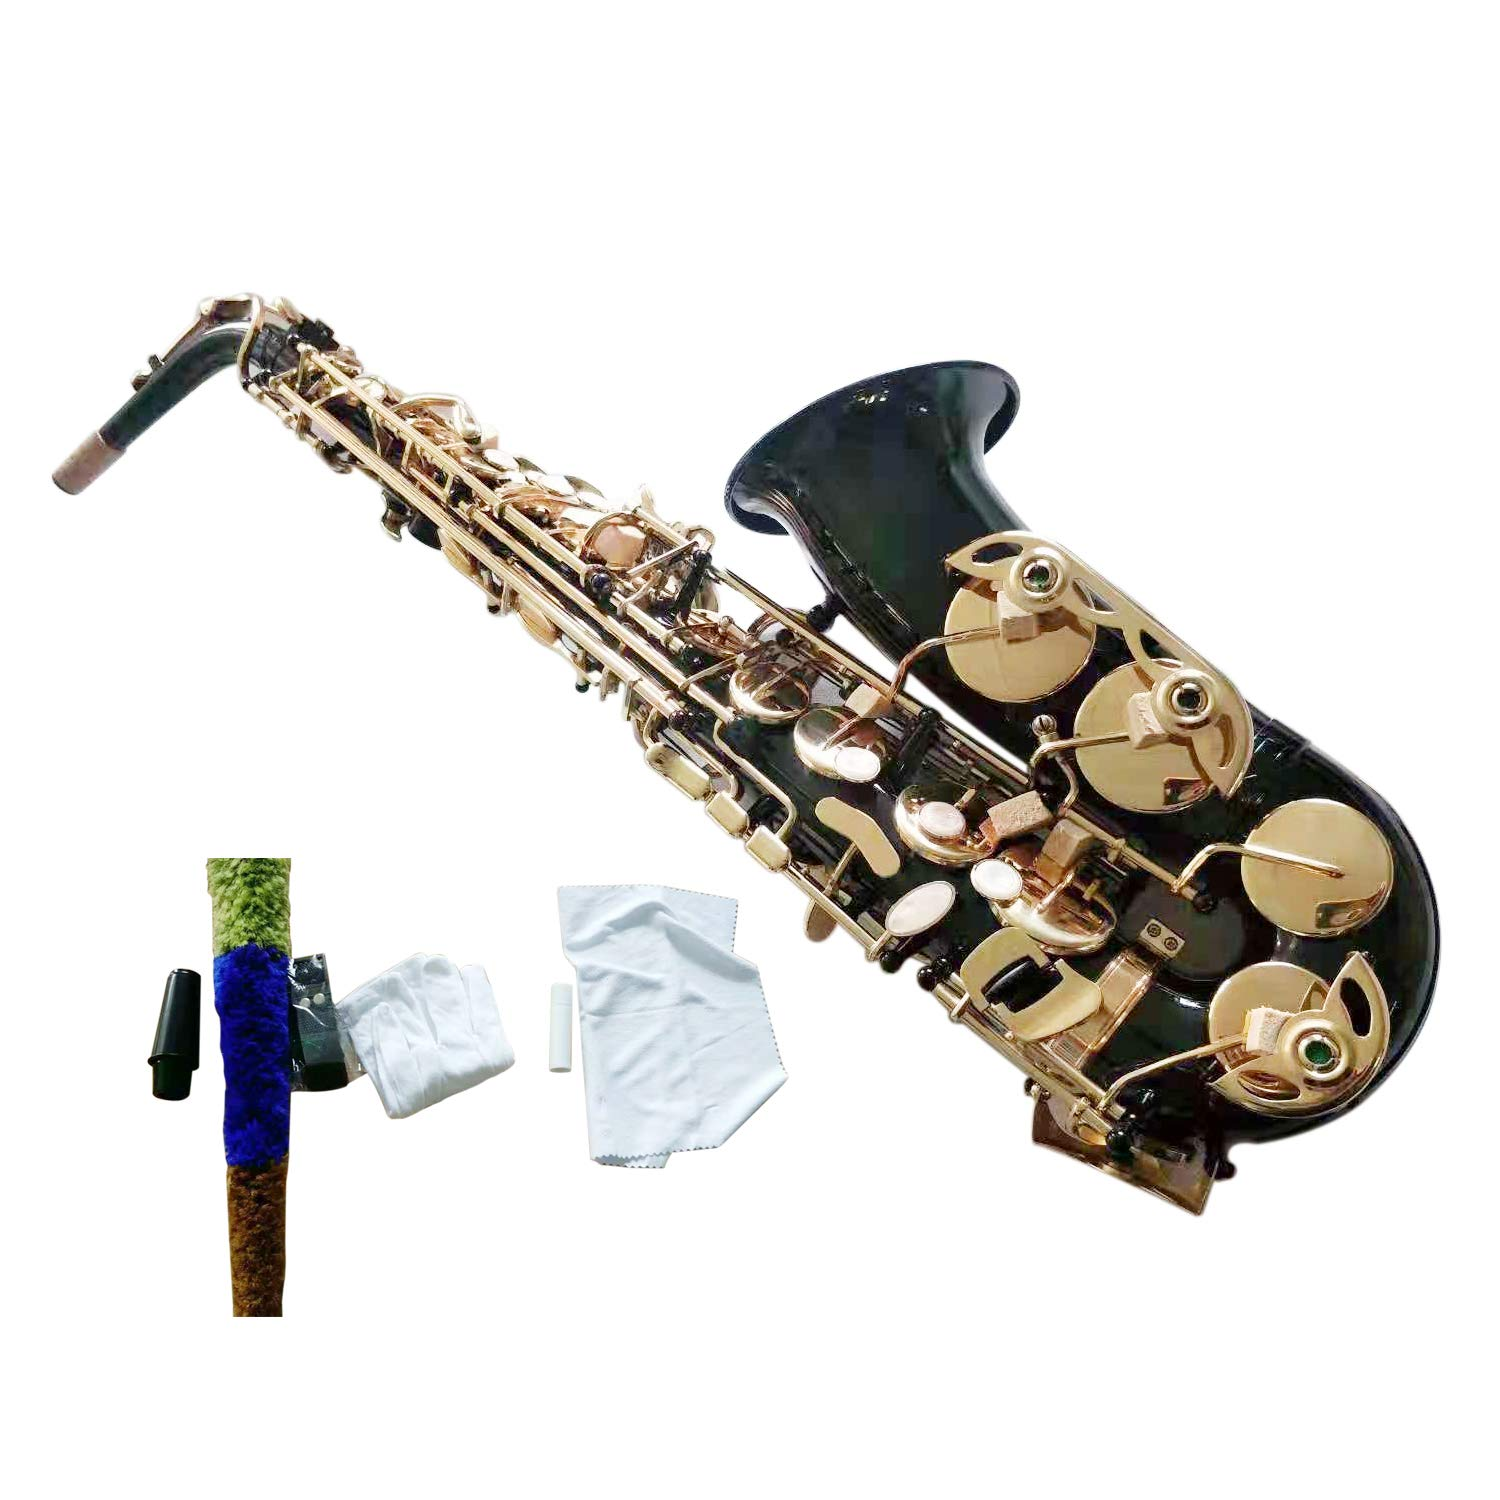 Flanger F-980 Black Nickel Plated Keys E Flat Professional Alto Saxophone with Tuner, Case, Mouthpiece by Flanger (Image #2)